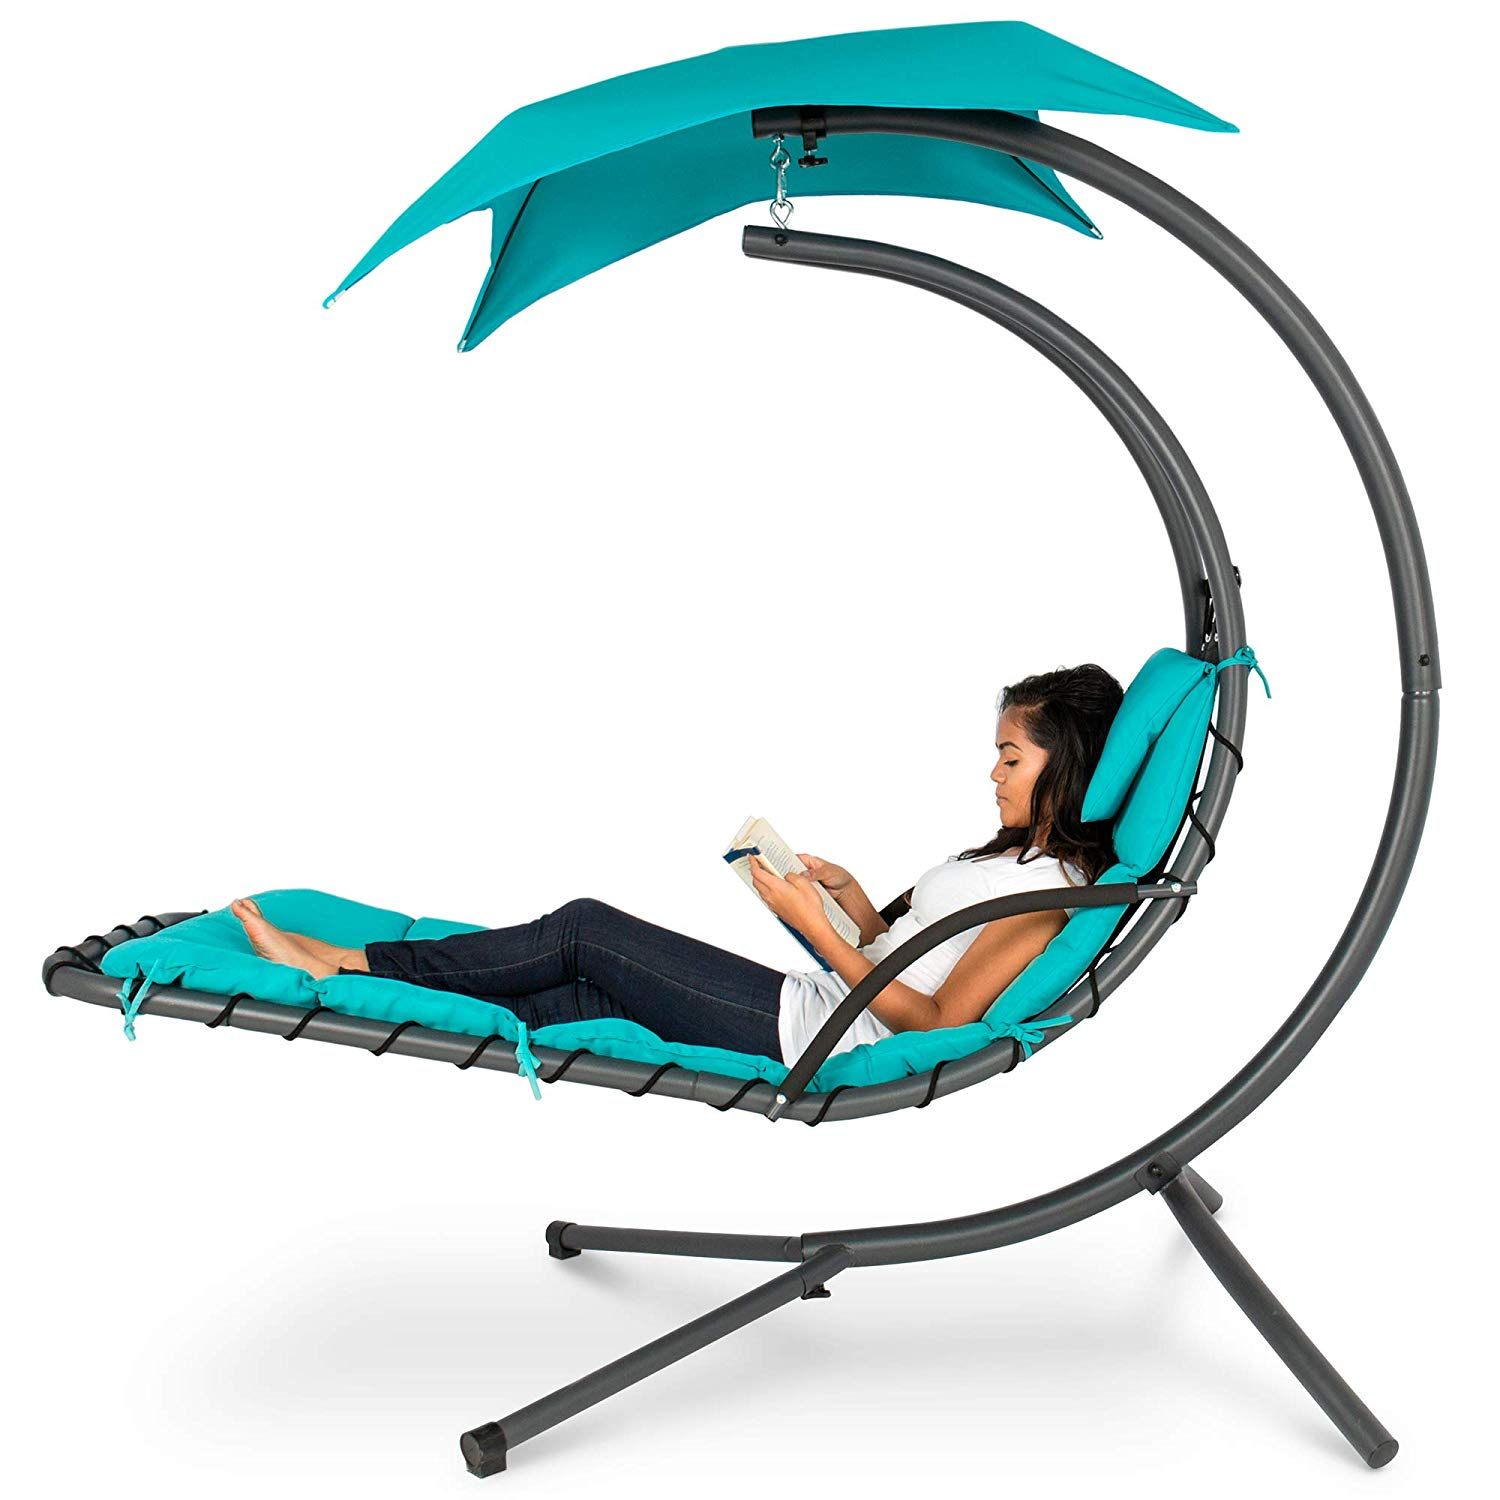 Hanging Curved Chaise Lounge Chair Swing Only $164.99 (Reg. $399.99) + FREE SHIPPING